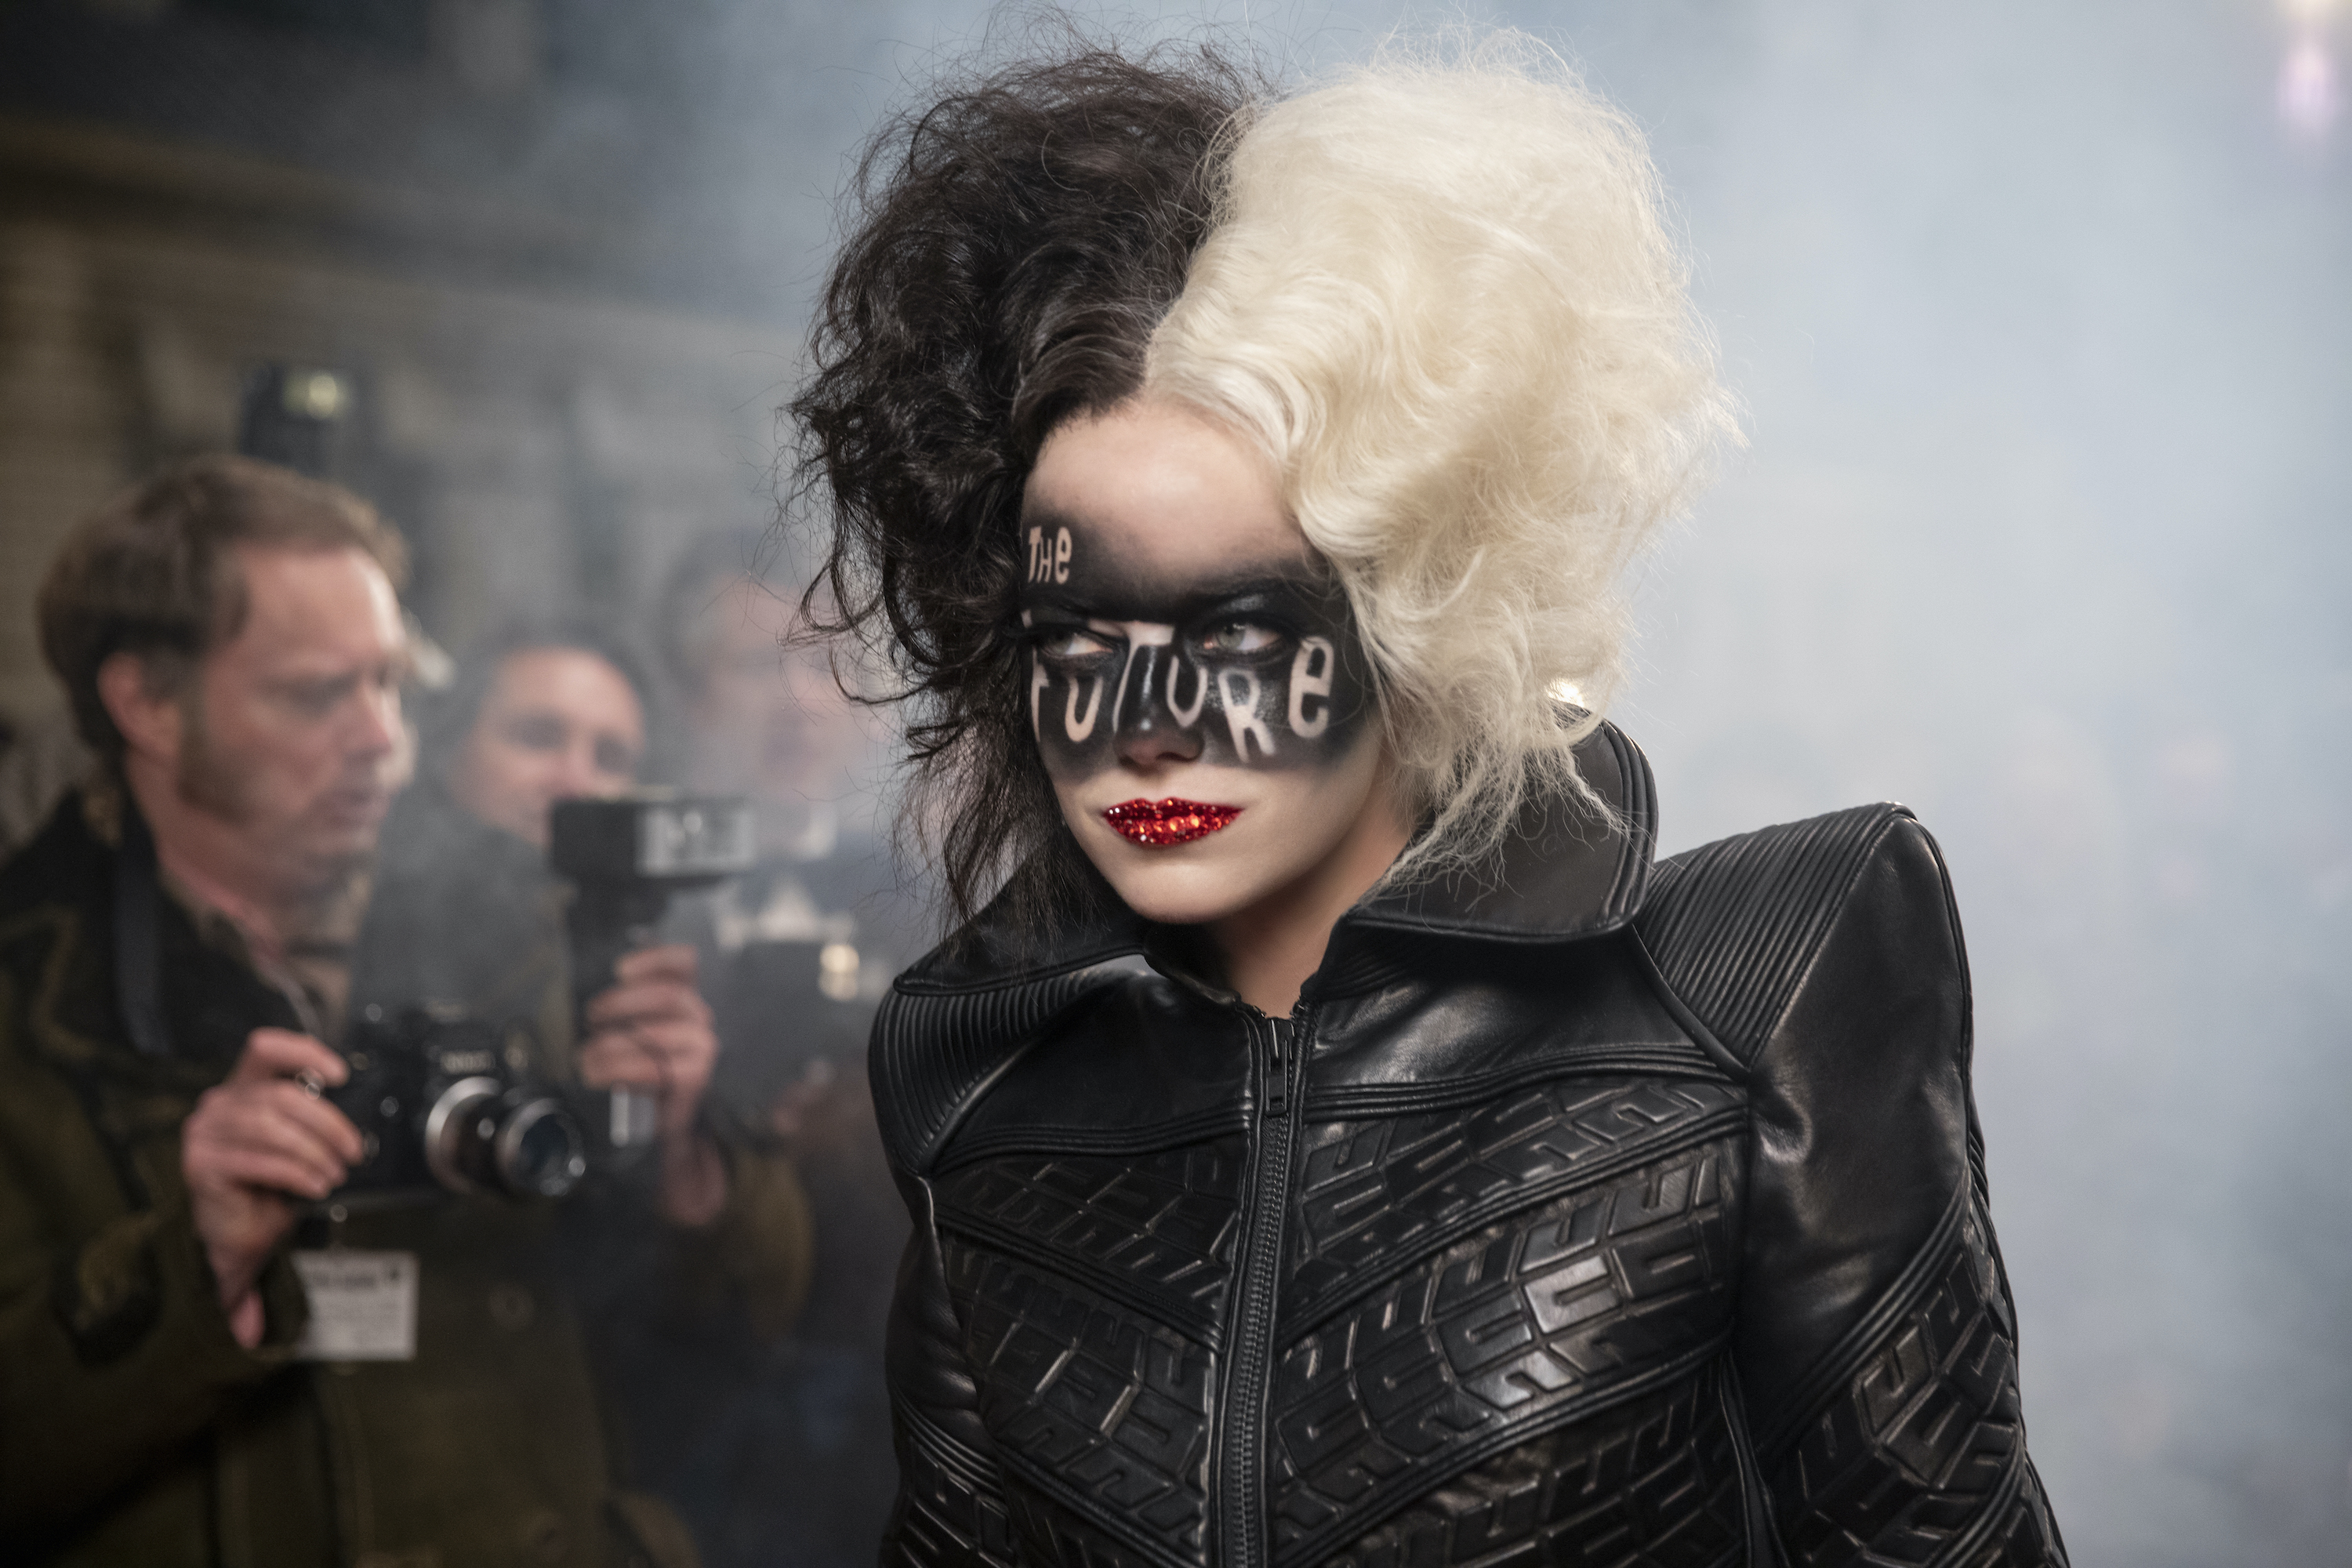 """Emma Stone as Cruella de Vil. She has black and white hair and is dressed in a structured leather ballgown. Her lips are painted with red glitter and """"the future"""" is written over her eyes in black paint."""